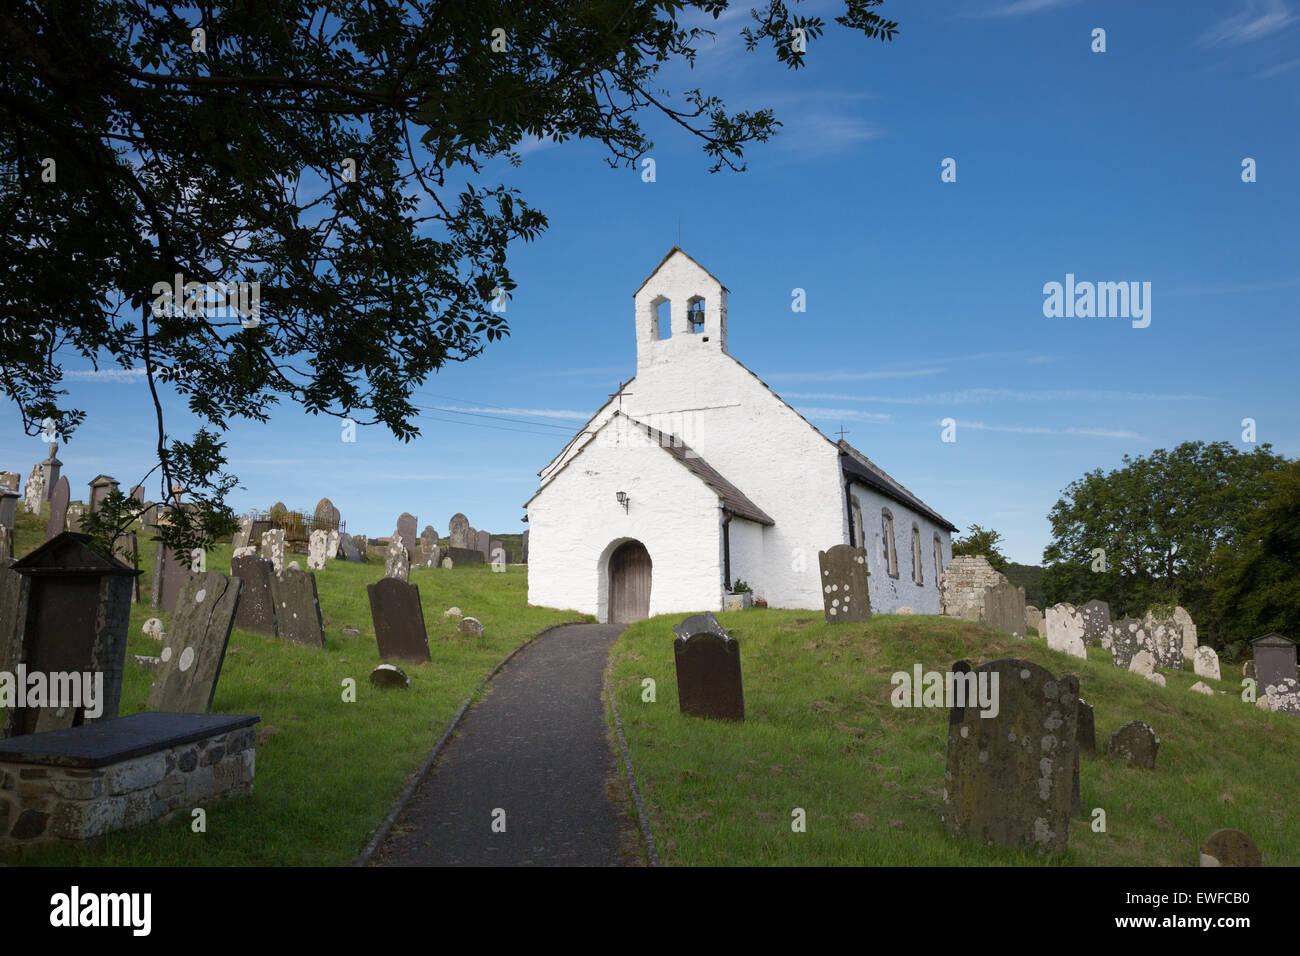 The ancient whitewashed church at Penbryn, on the mid